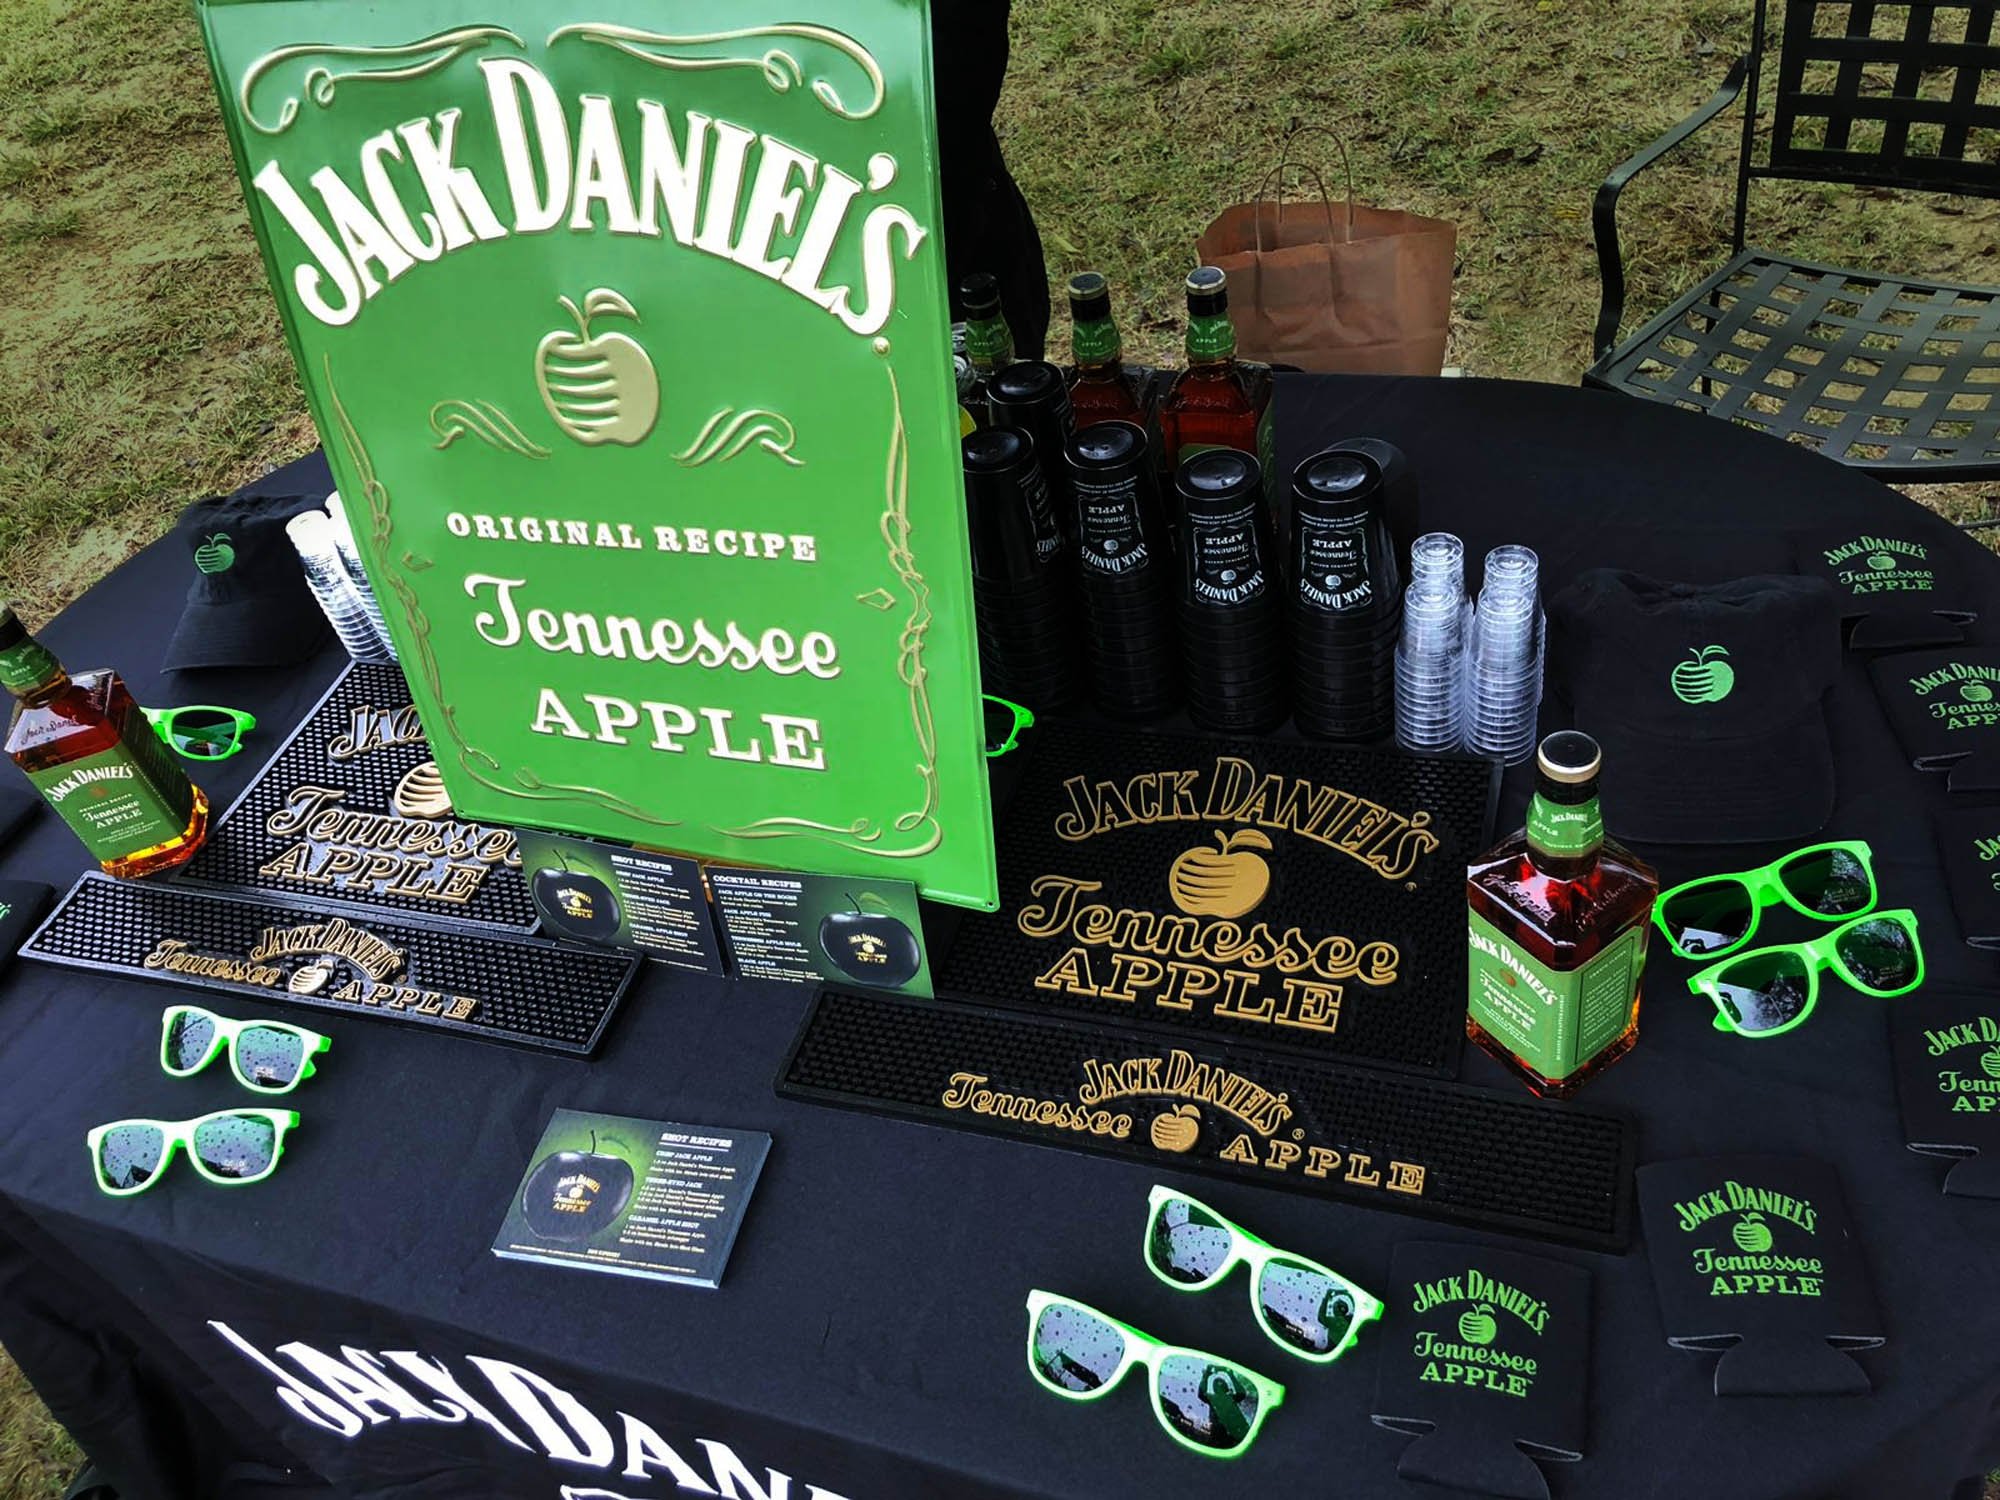 For the launch of Jack Daniel's Tennessee Apple Whiskey, also known as Apple Jack, we developed a nation-wide program in the U.S. to promote sales and awareness. With a focus in dense markets near city centres, like Las Vegas, Houston and New York City, our team created unique on and off-premise events for each area and its audience. The campaign included sponsorships, feature placements and new account development. The program effectively reached over 230 accounts and over 33,000 target consumers.